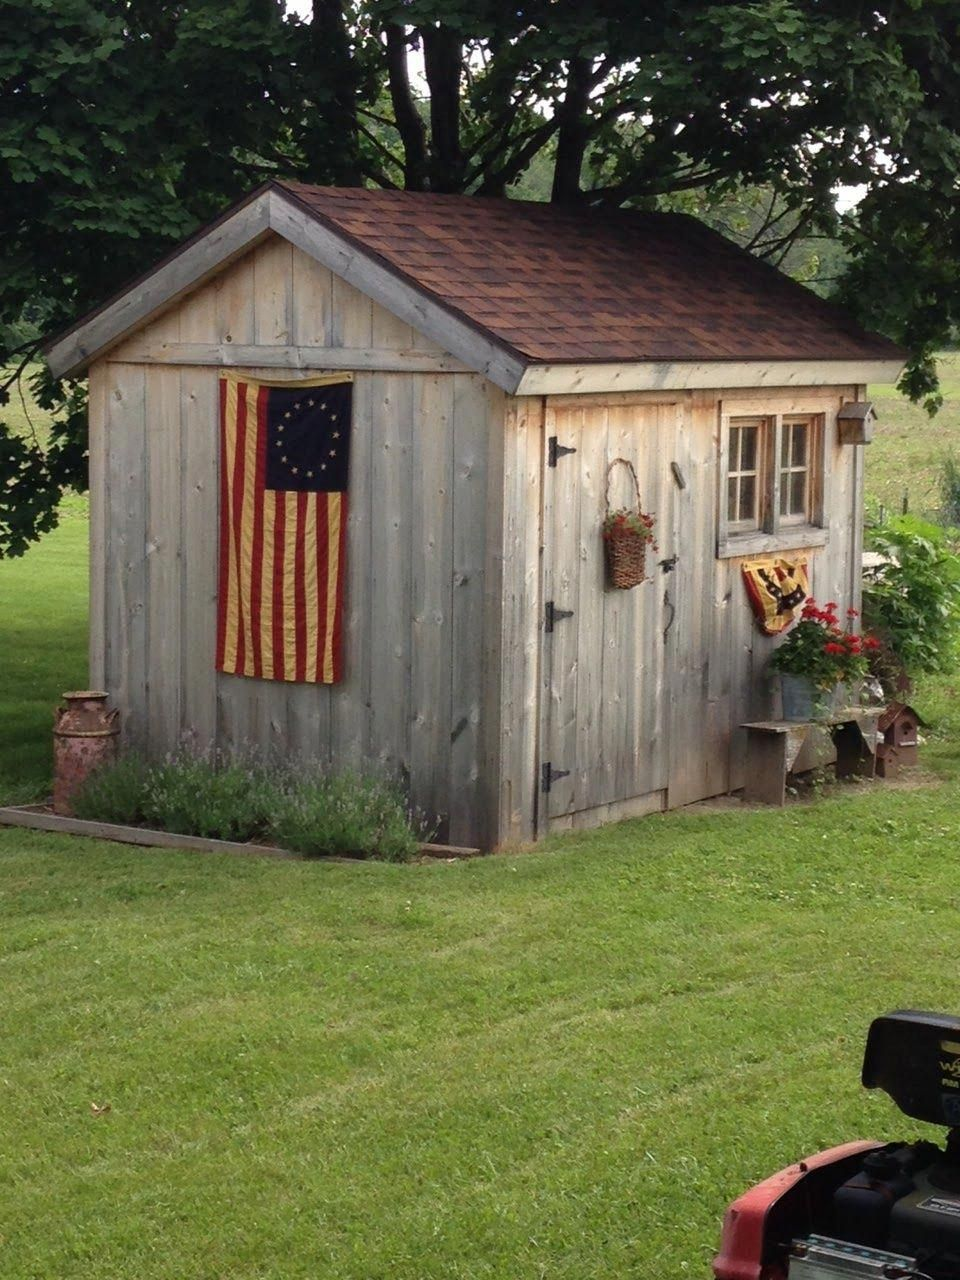 Charming country shed with american flag for more more interesting sheds guest houses studios and greenhouses follow jill jordans board outbuildings